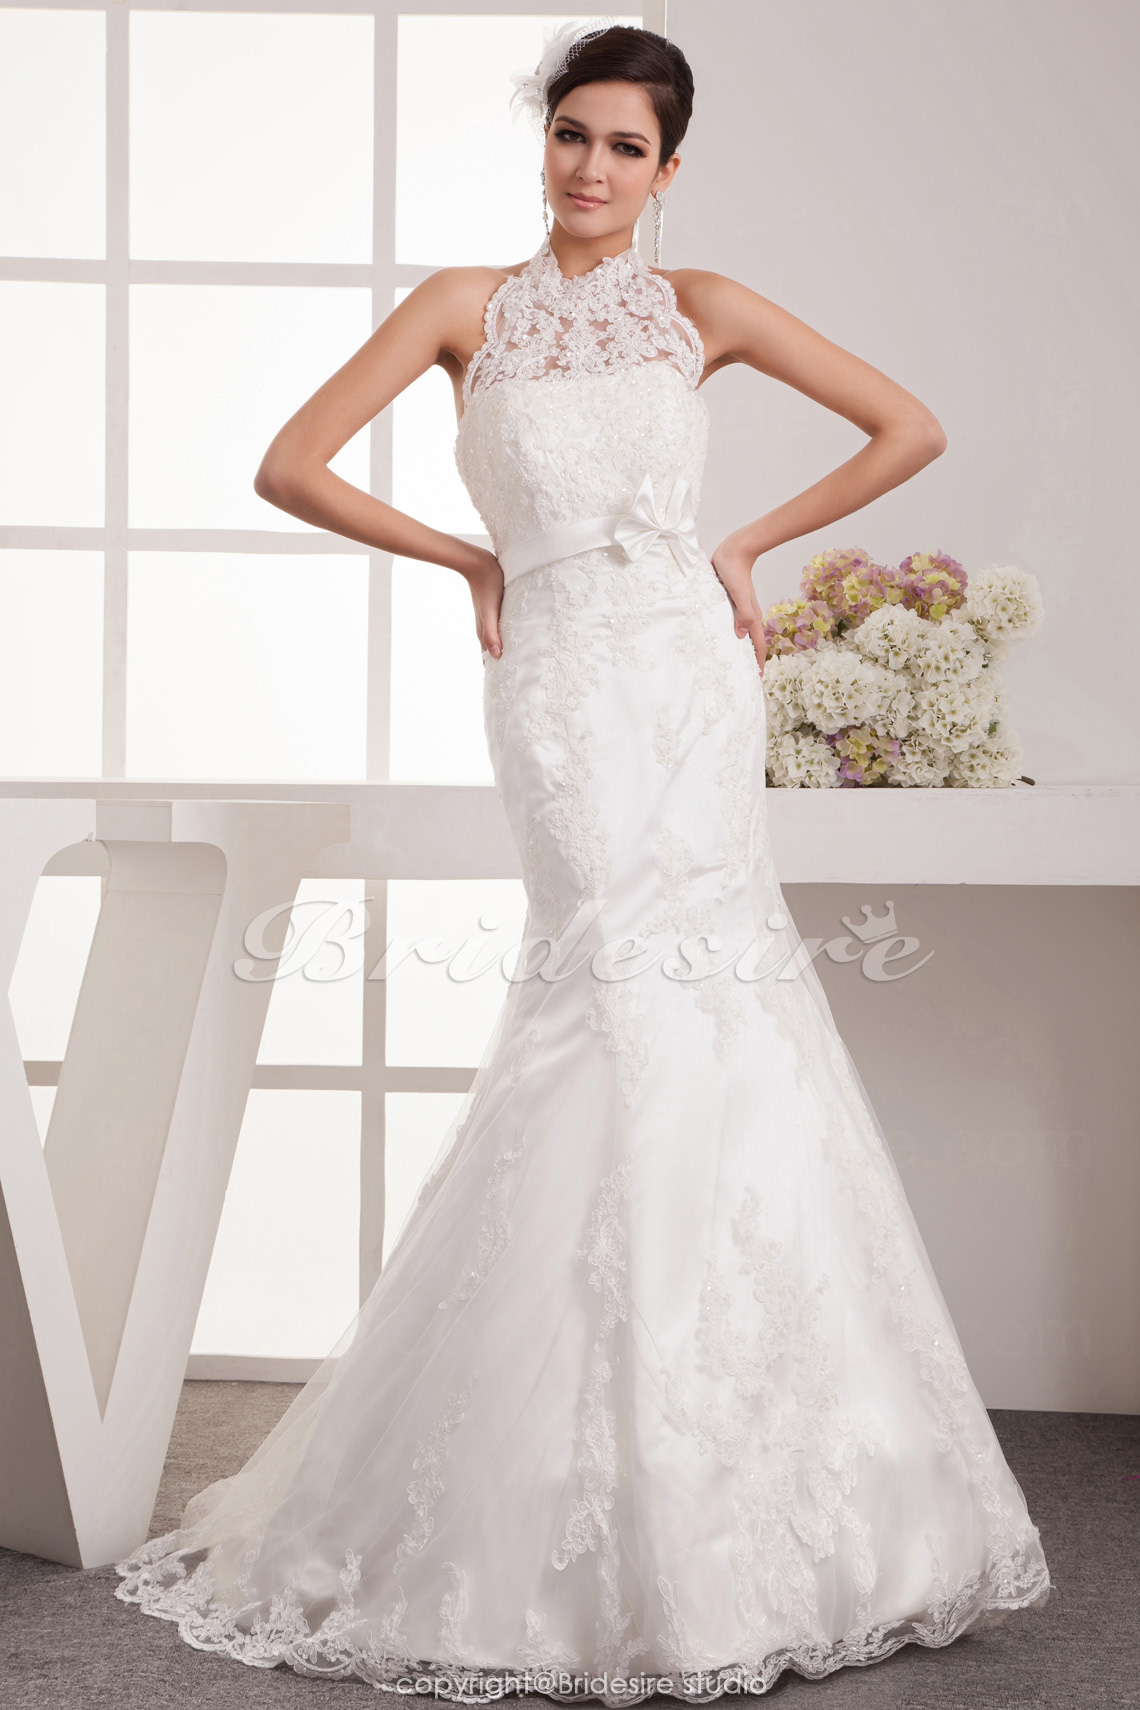 Trumpet/Mermaid High Neck Floor-length Sleeveless Satin Lace Wed